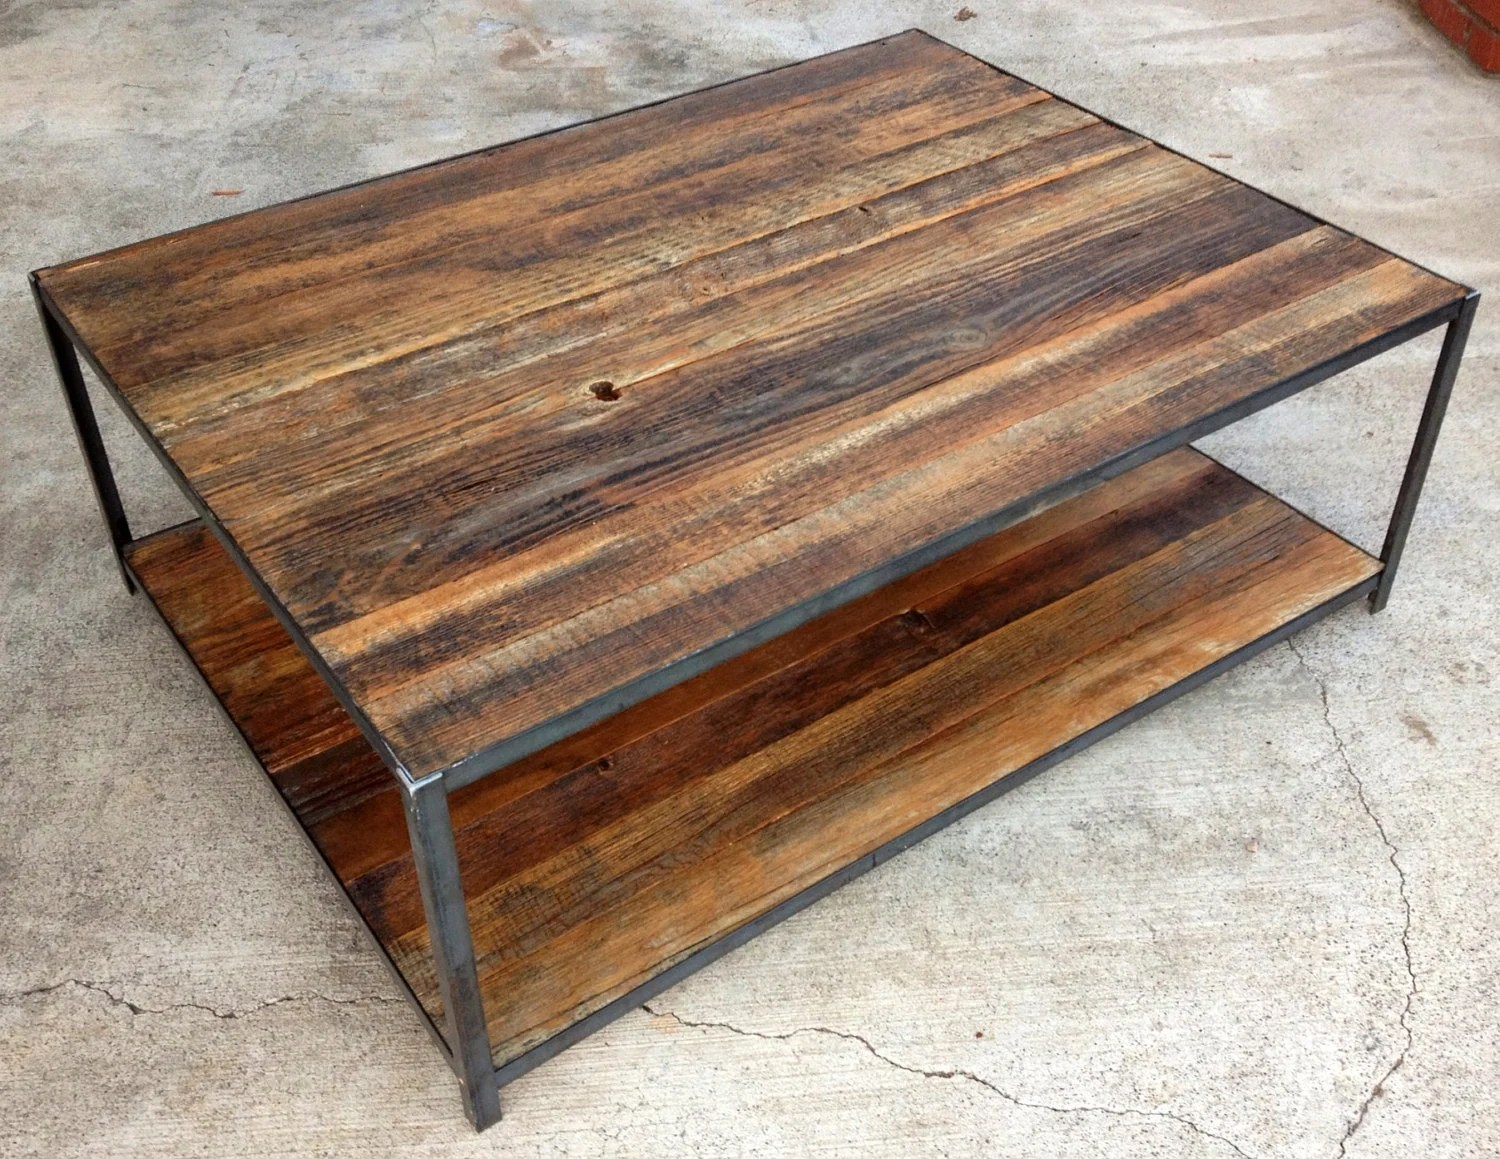 Reclaimed Wood and Angle Iron Coffee Table - TravisHayesFurniture